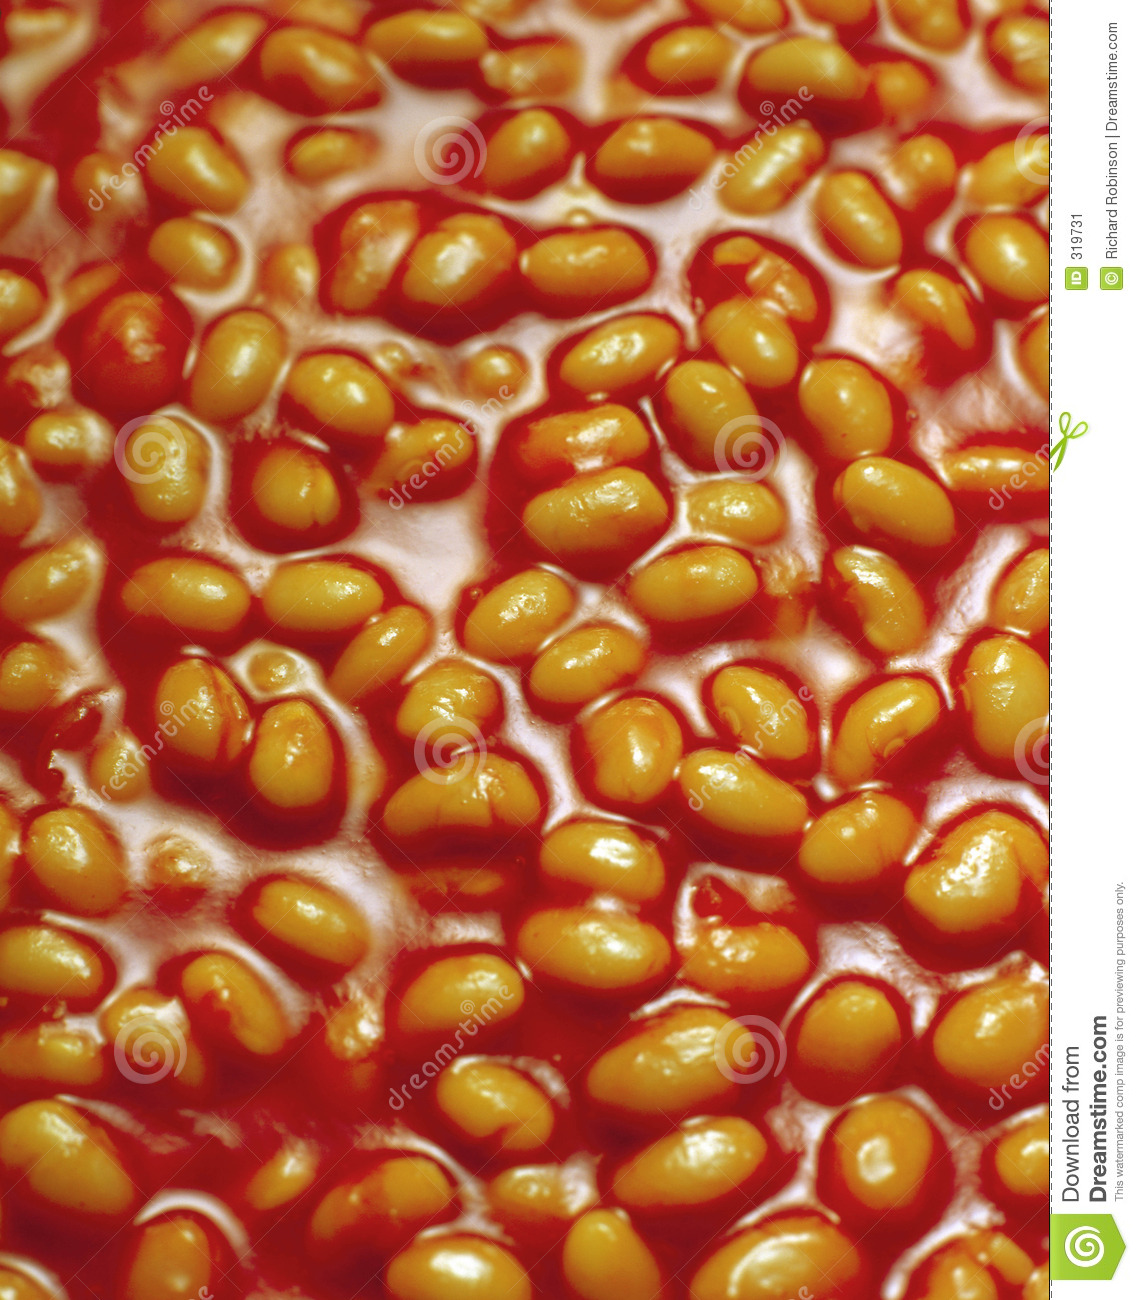 Baked Beans In Tomato Sauce Stock Image - Image: 319731